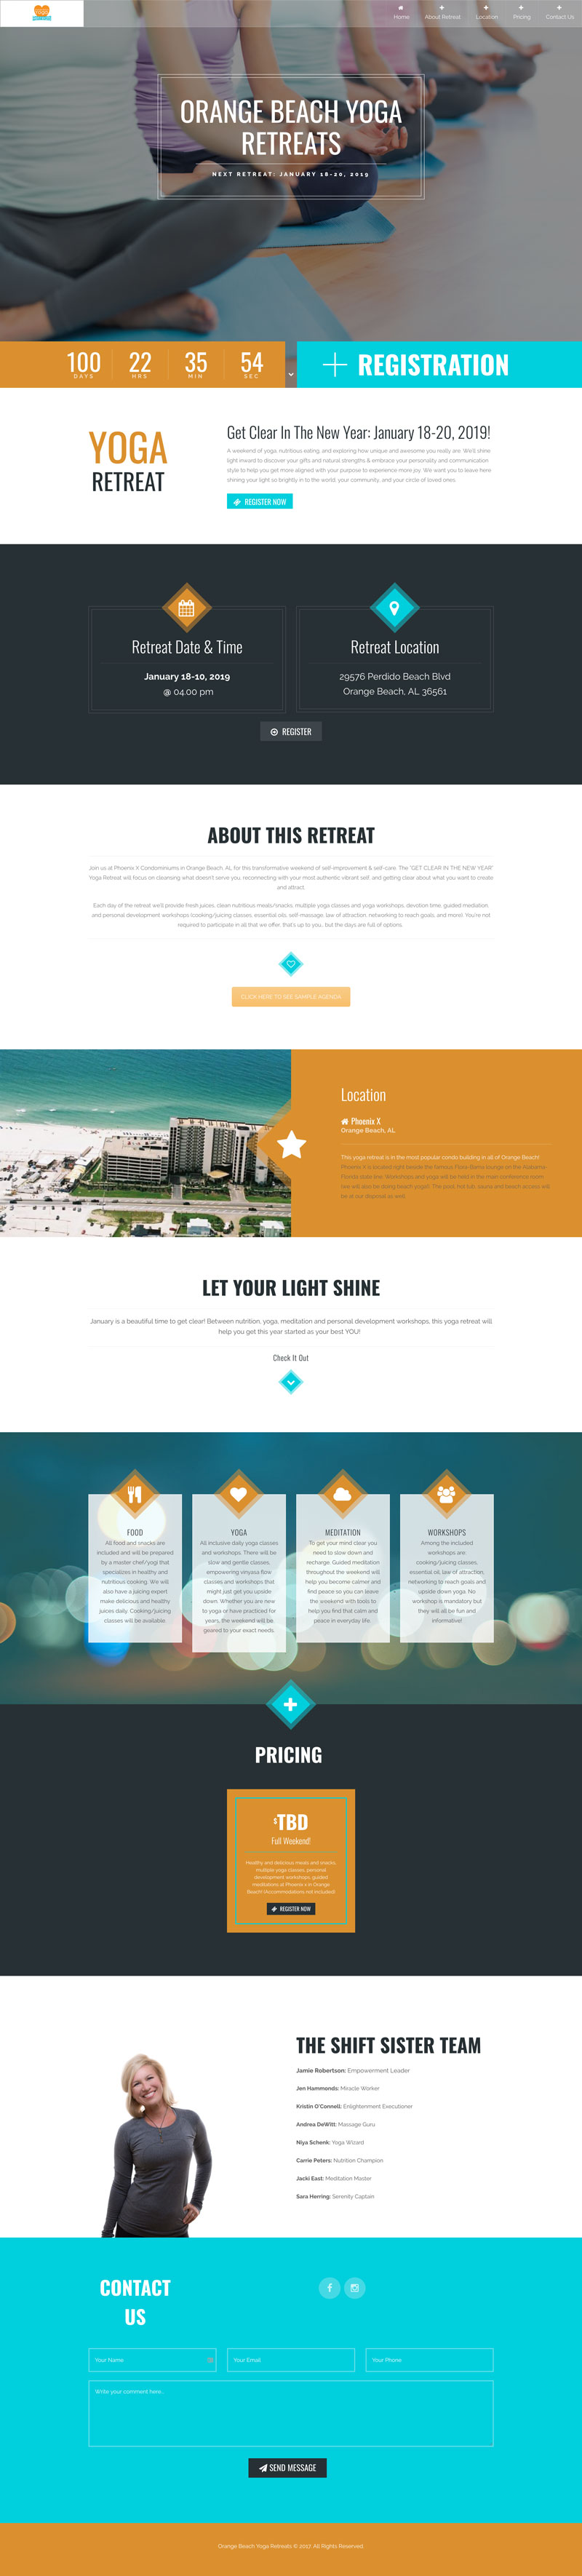 orange-beach-event-website-creator-1